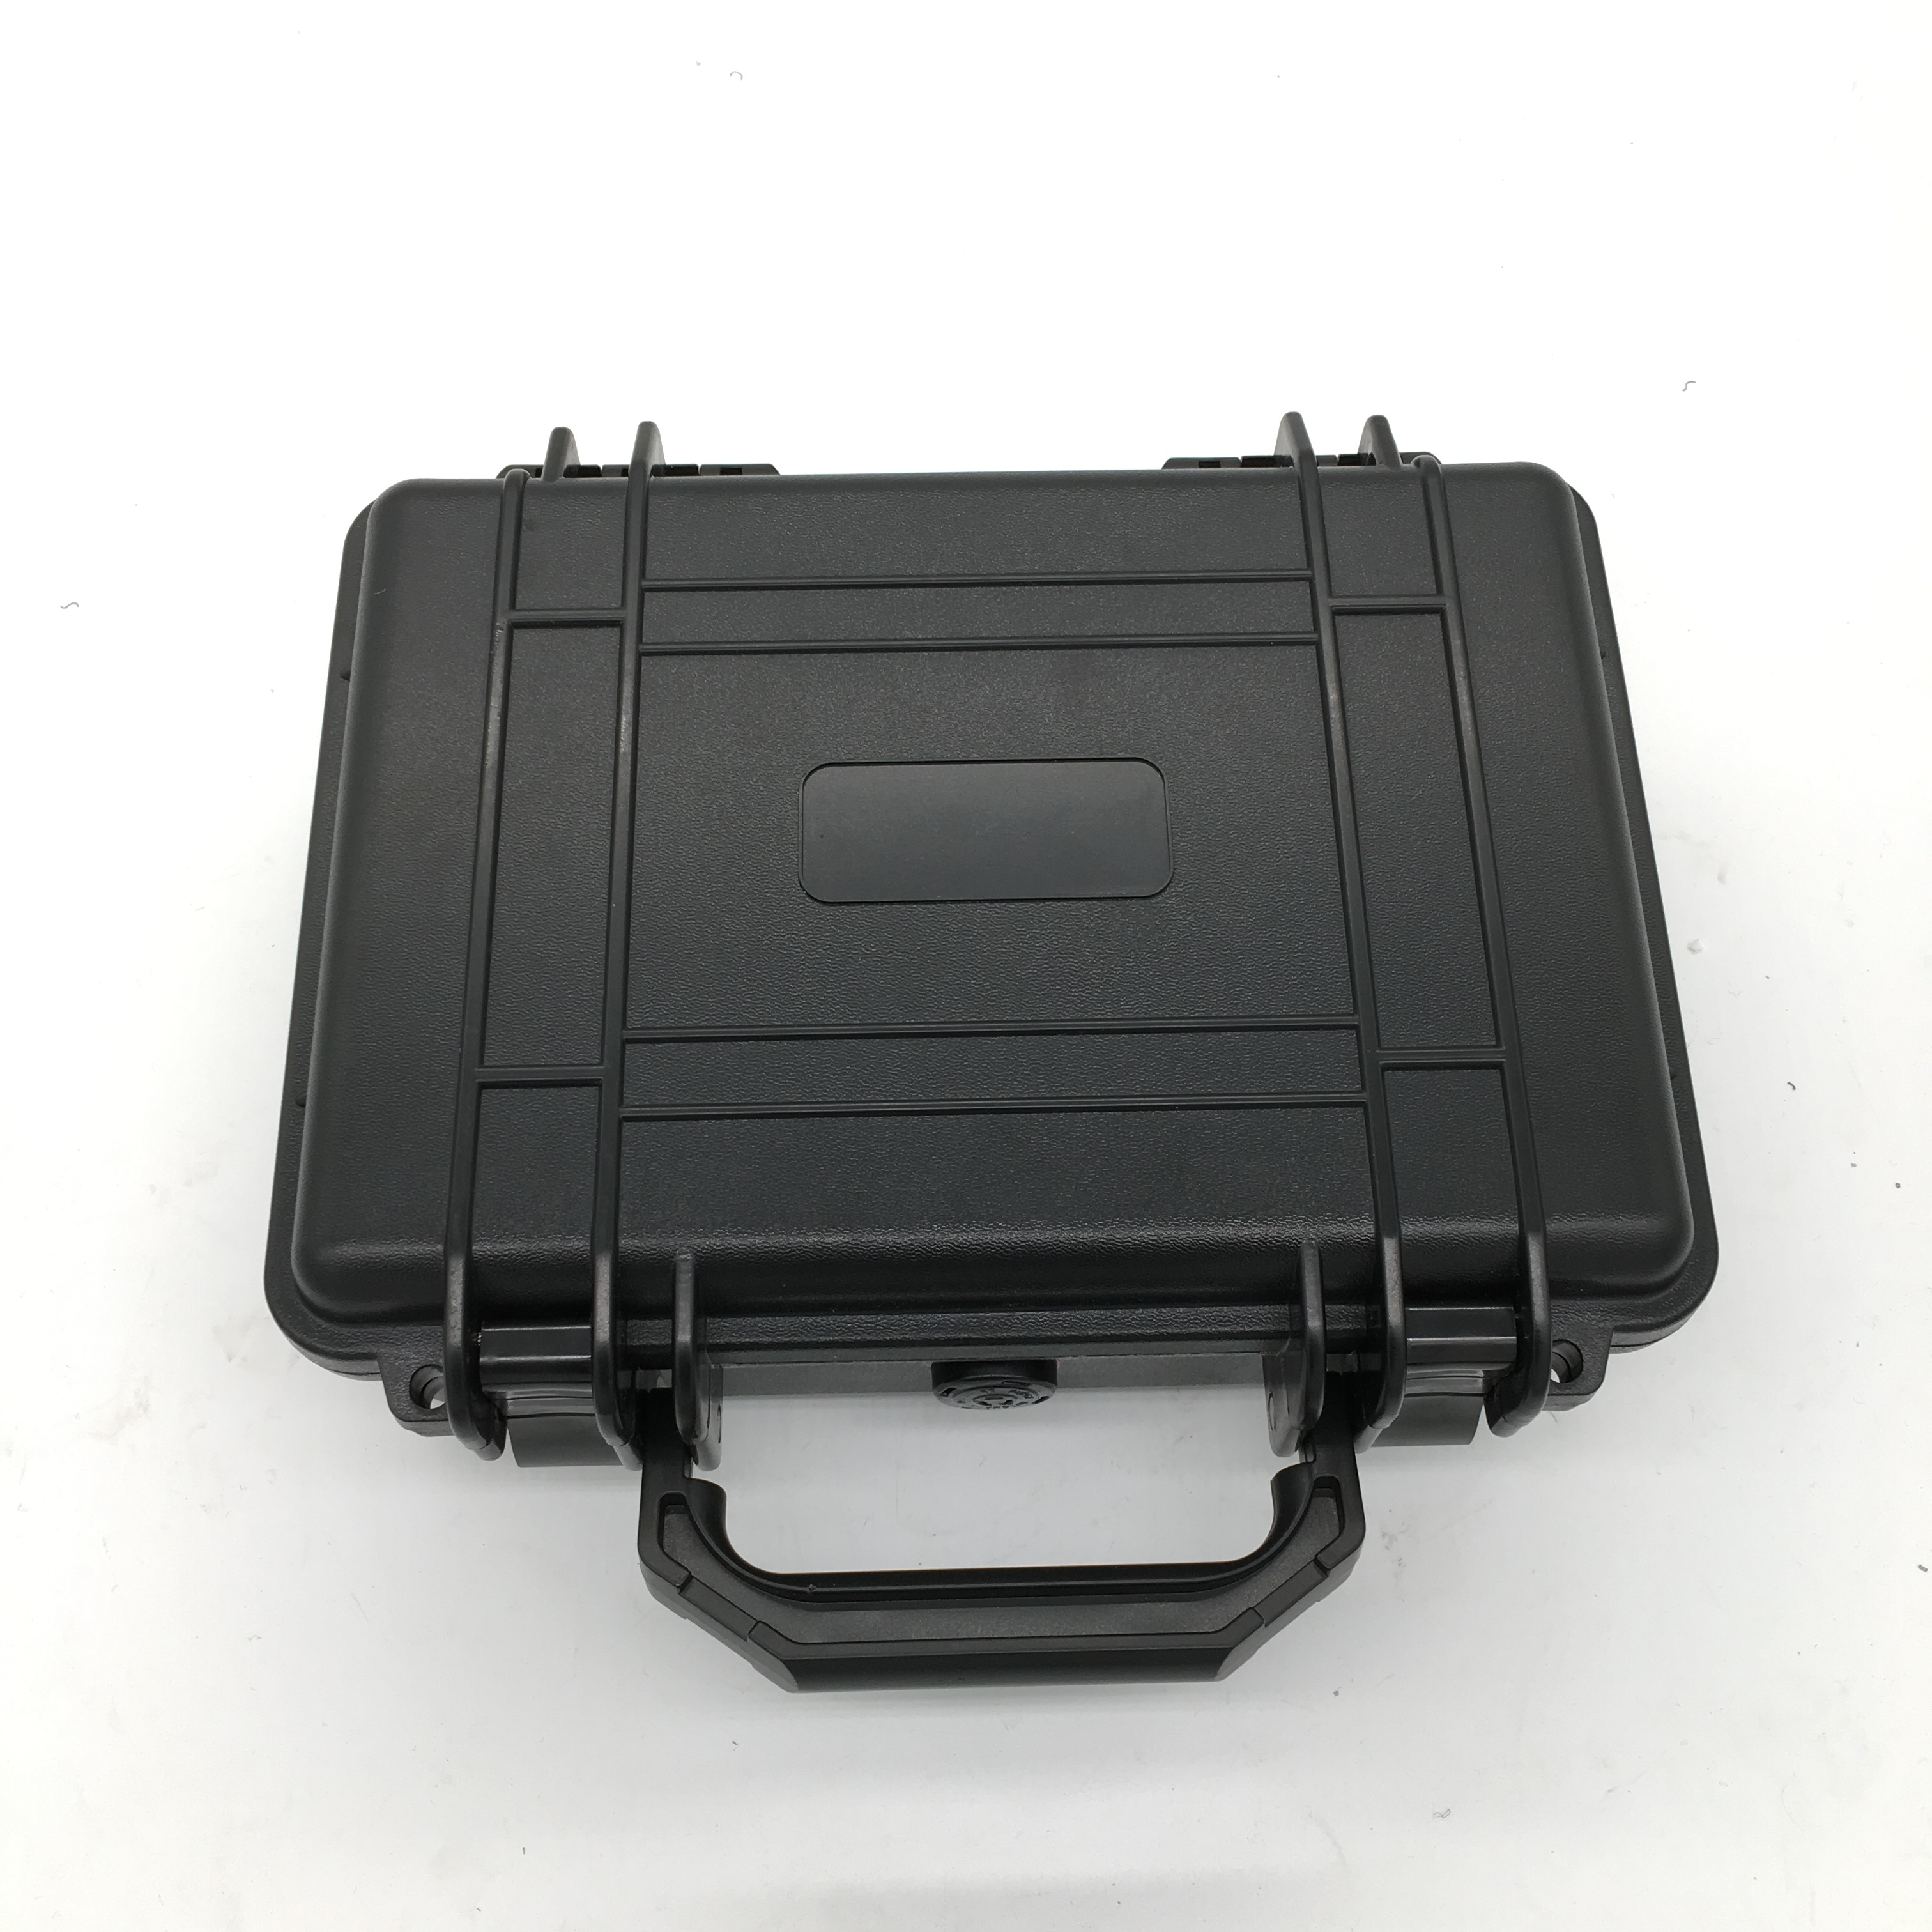 Rear Box Suitcase For Moving Paws Electric Scooter Extra Battery Box for UBGO Moving Paws electric scooterRear Box Suitcase For Moving Paws Electric Scooter Extra Battery Box for UBGO Moving Paws electric scooter